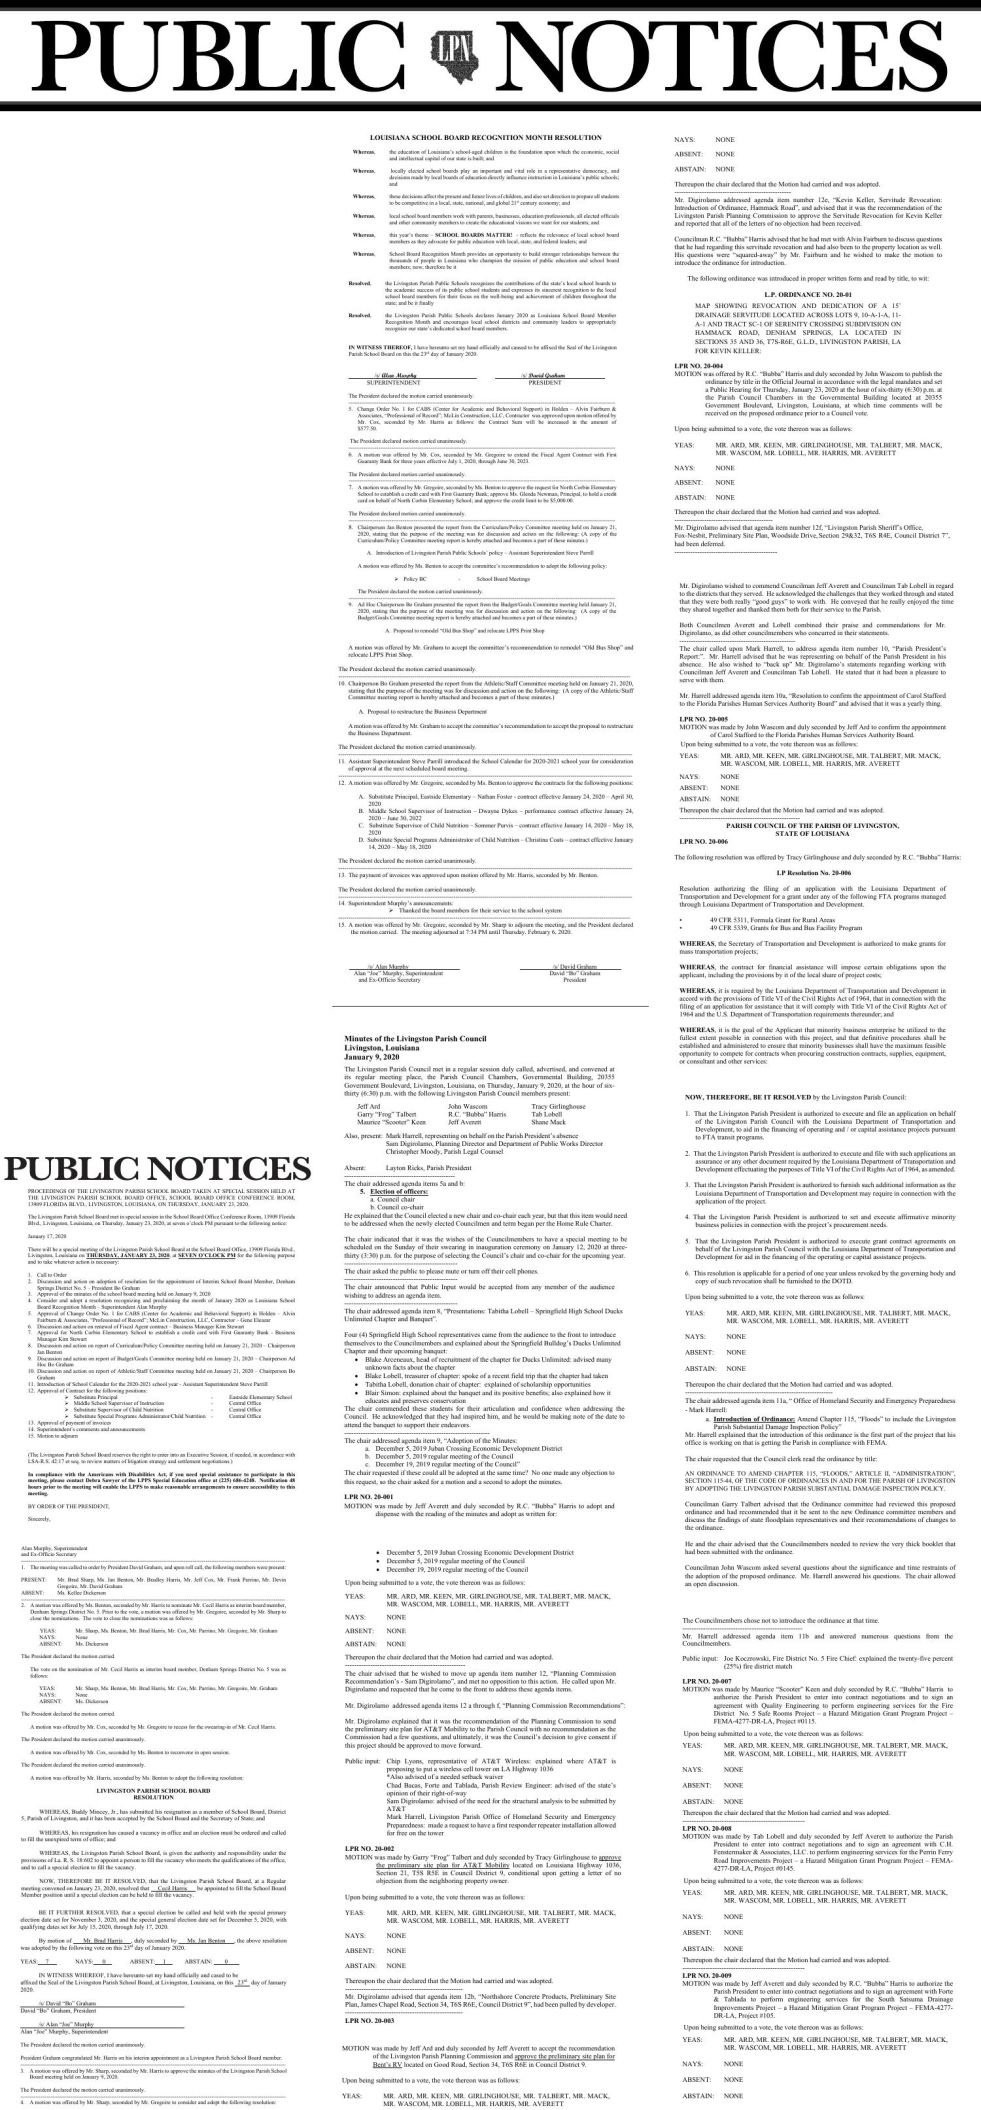 Public Notices published February 13, 2020